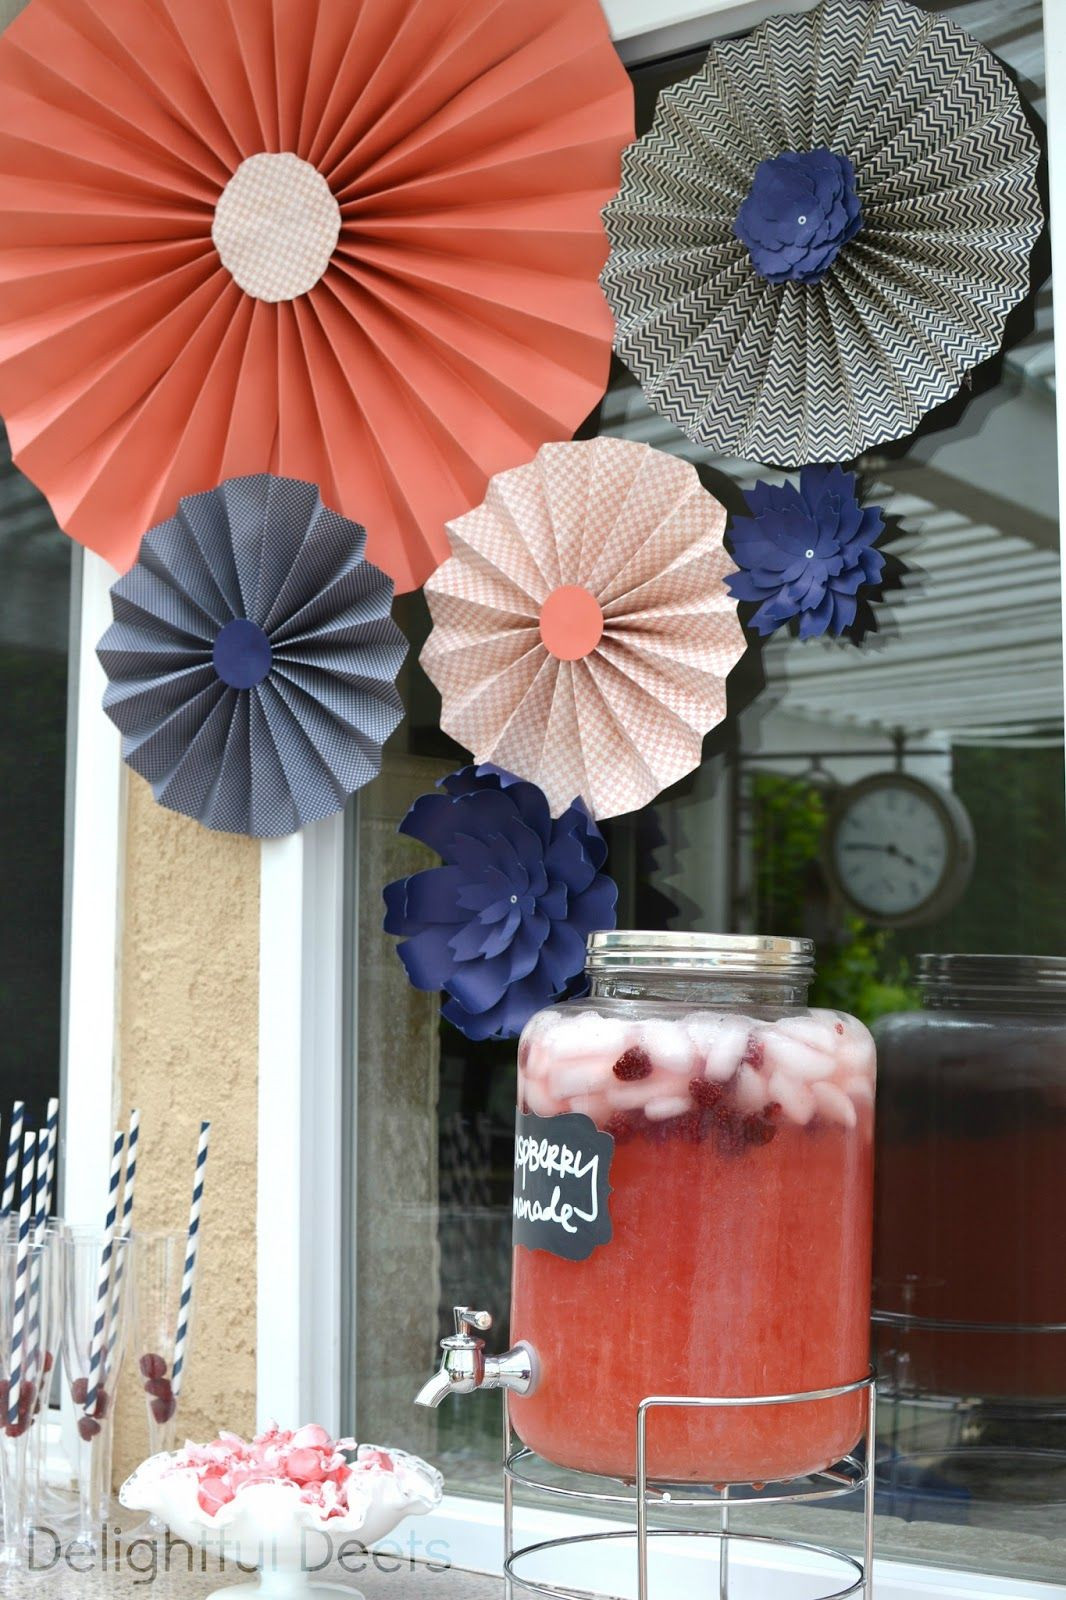 Coral Baby Shower Decor Awesome Delightful Deets Navy & Coral Baby Shower for Summer